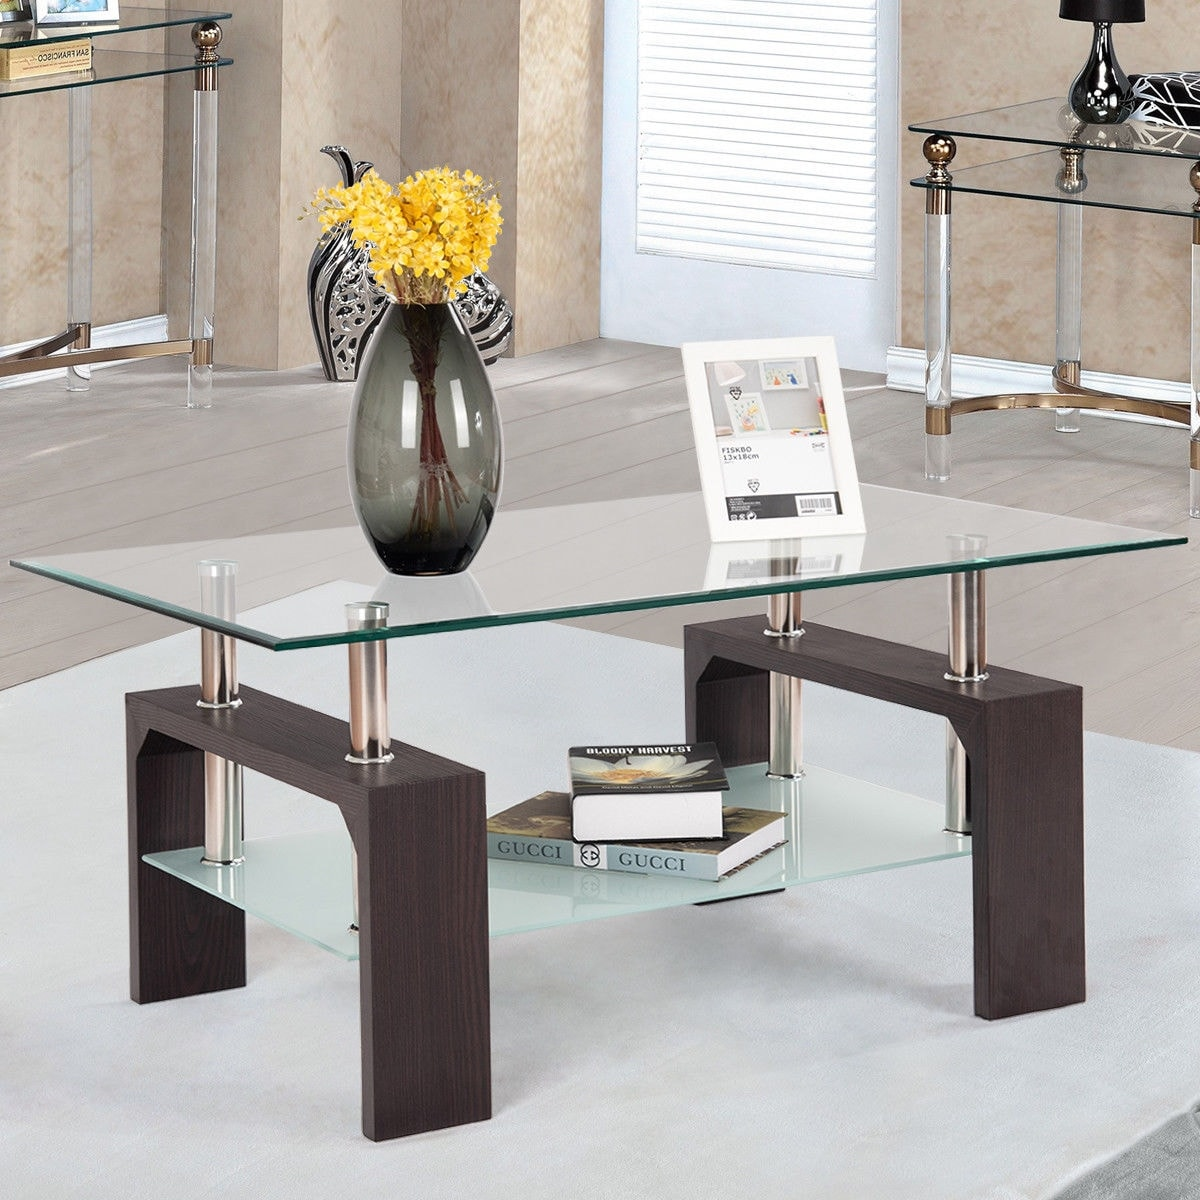 Costway Rectangular Tempered Glass Coffee Table w/Shelf Wood Living ...